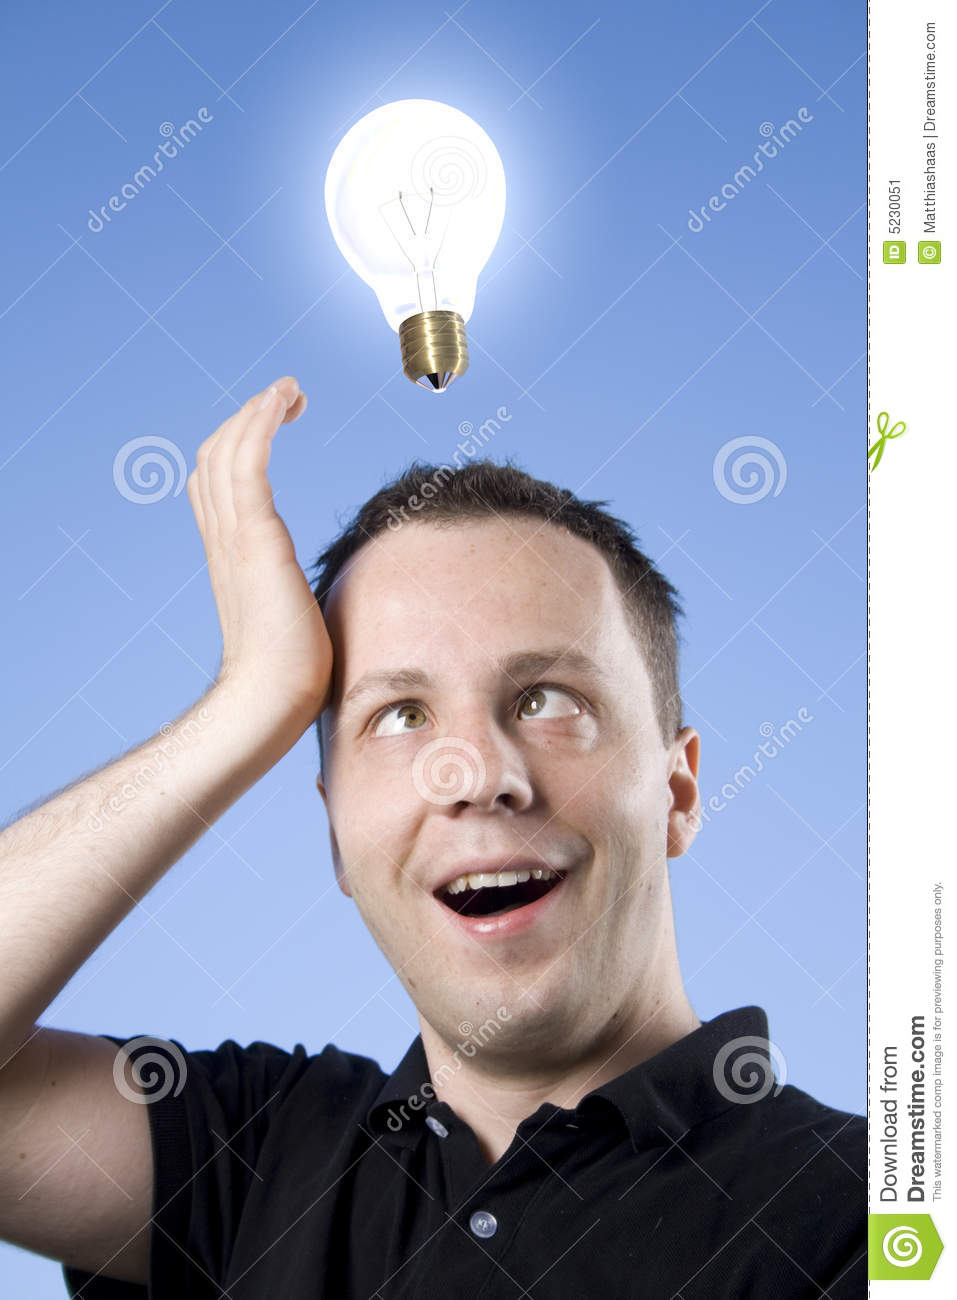 Idea Lightbulb Stock Photo 5230051